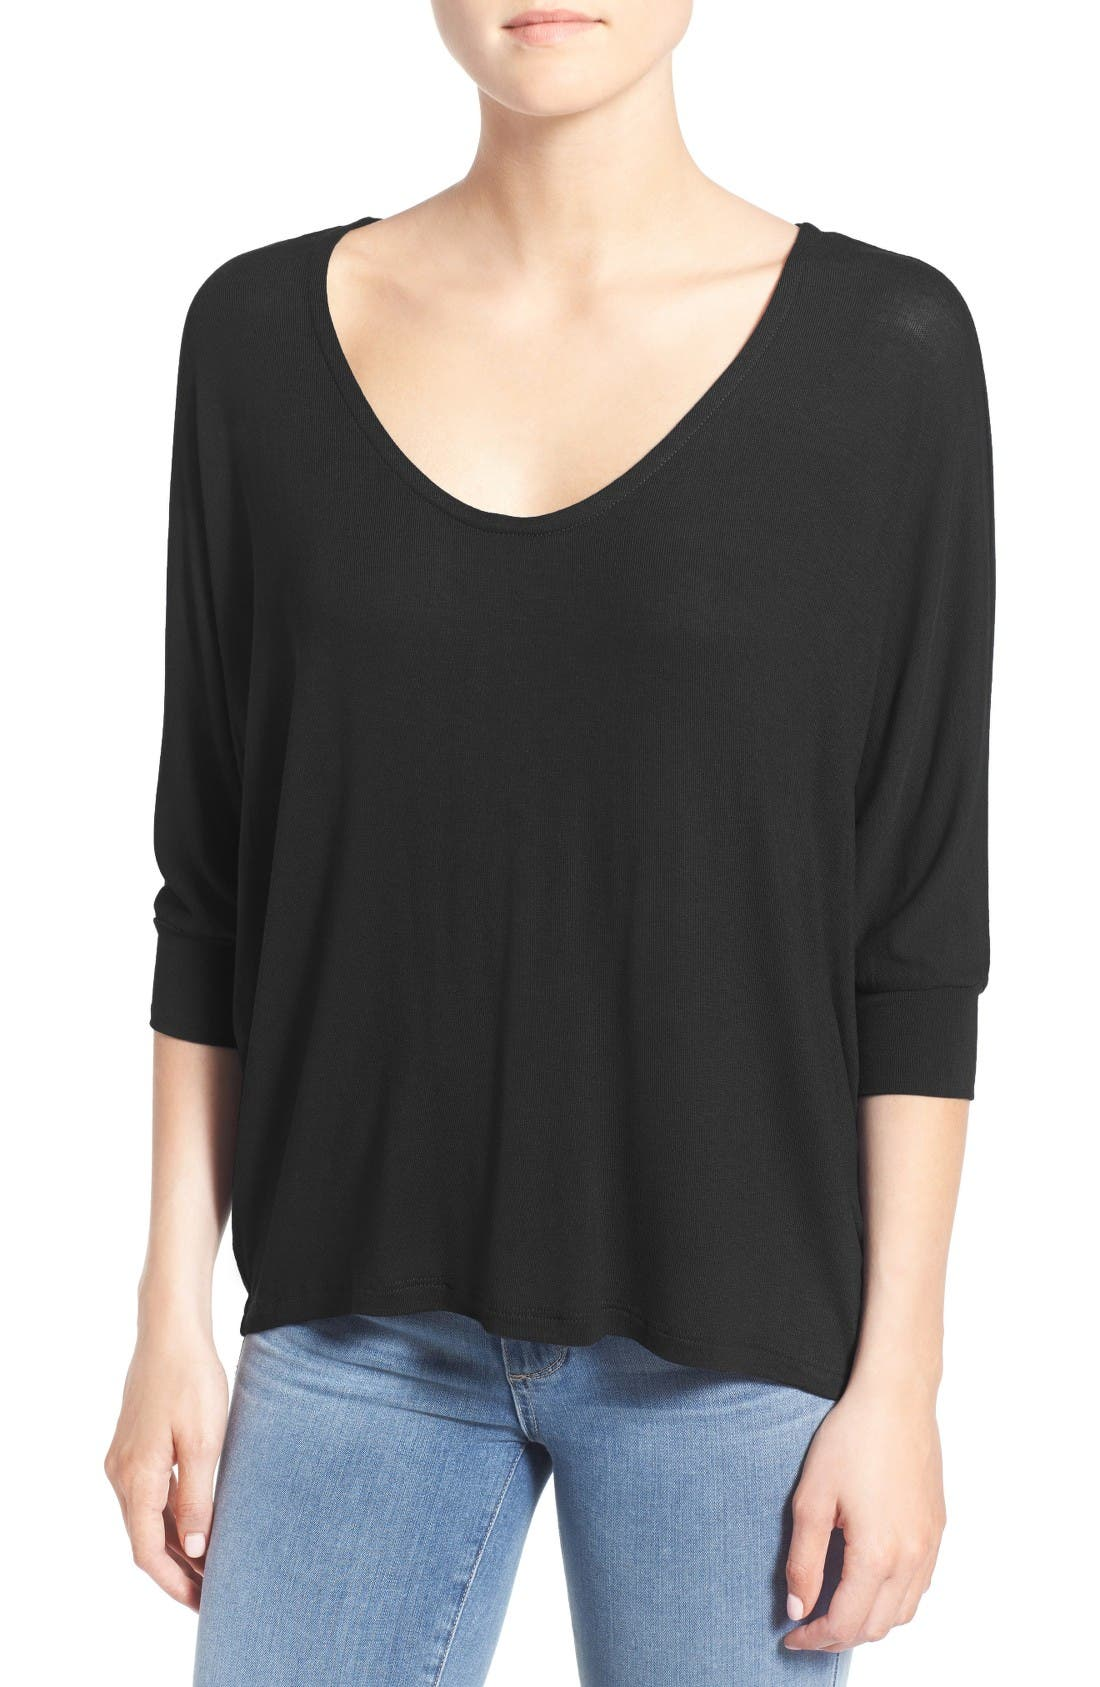 Alternate Image 1 Selected - Splendid Dolman Sleeve Top